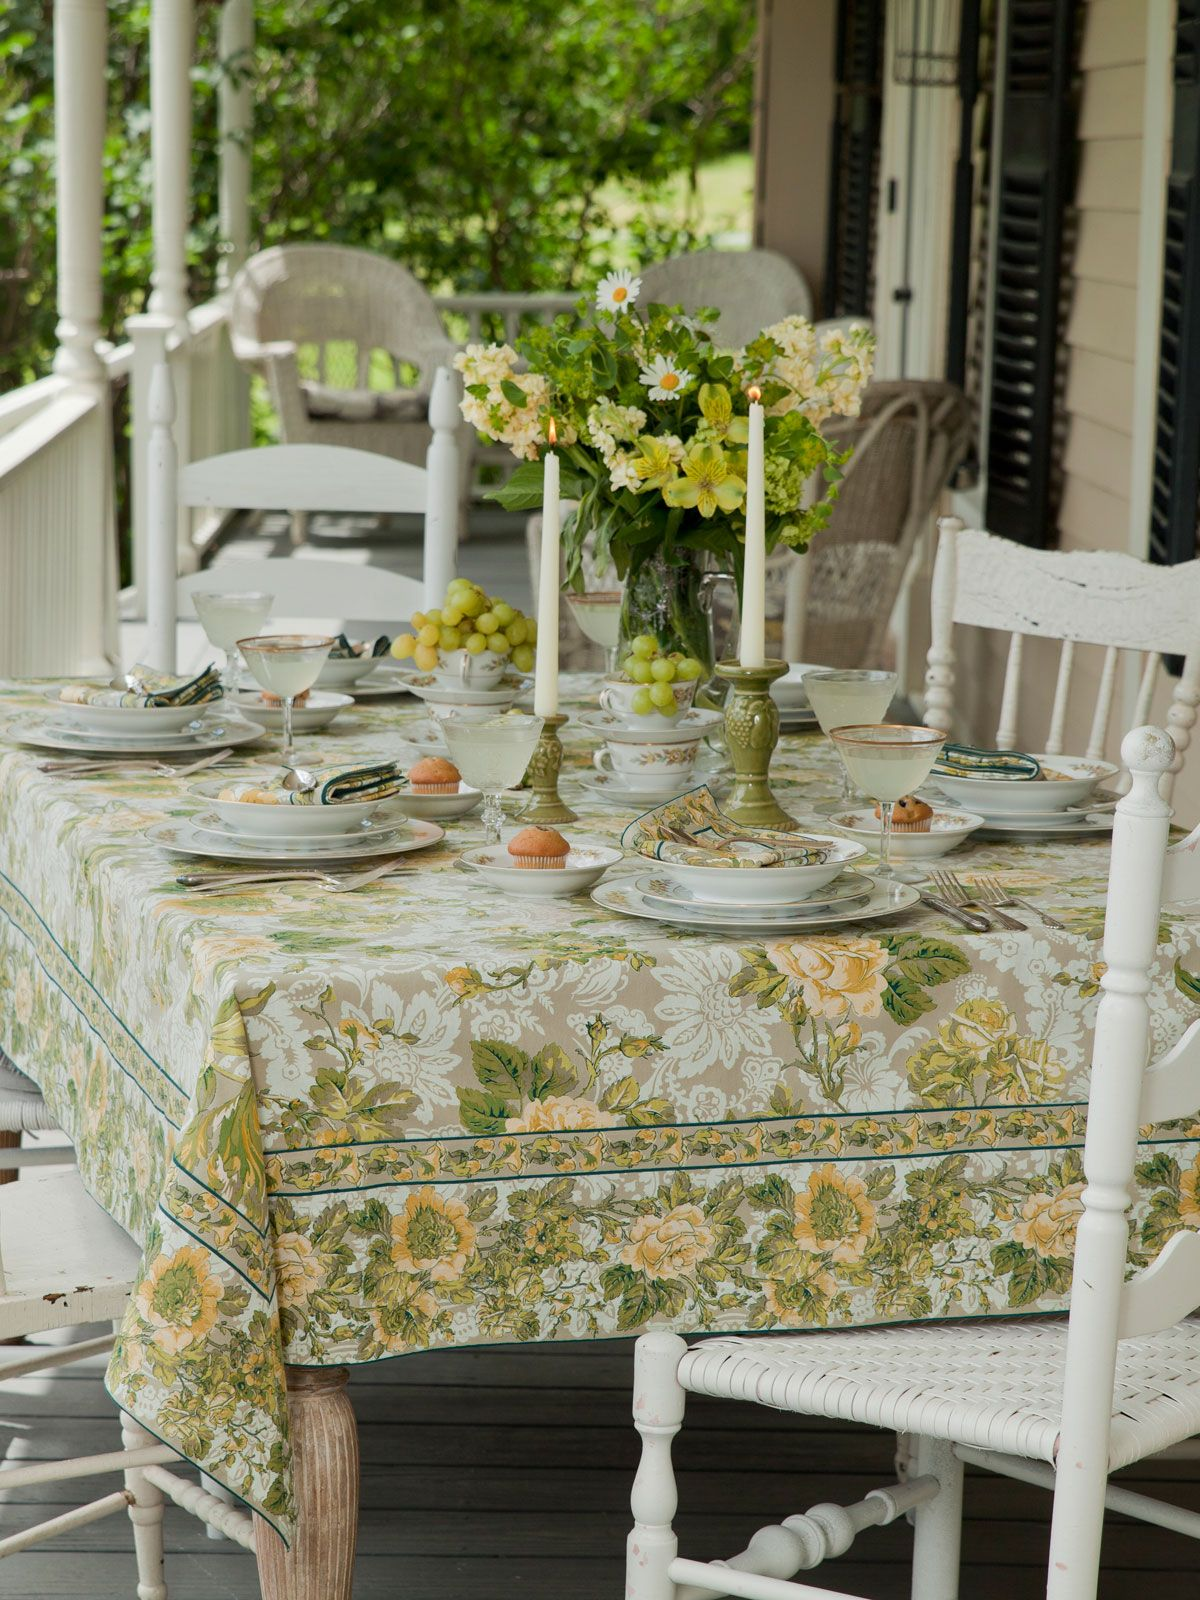 Tea Rose Tablecloth In Smoke By April Cornell.